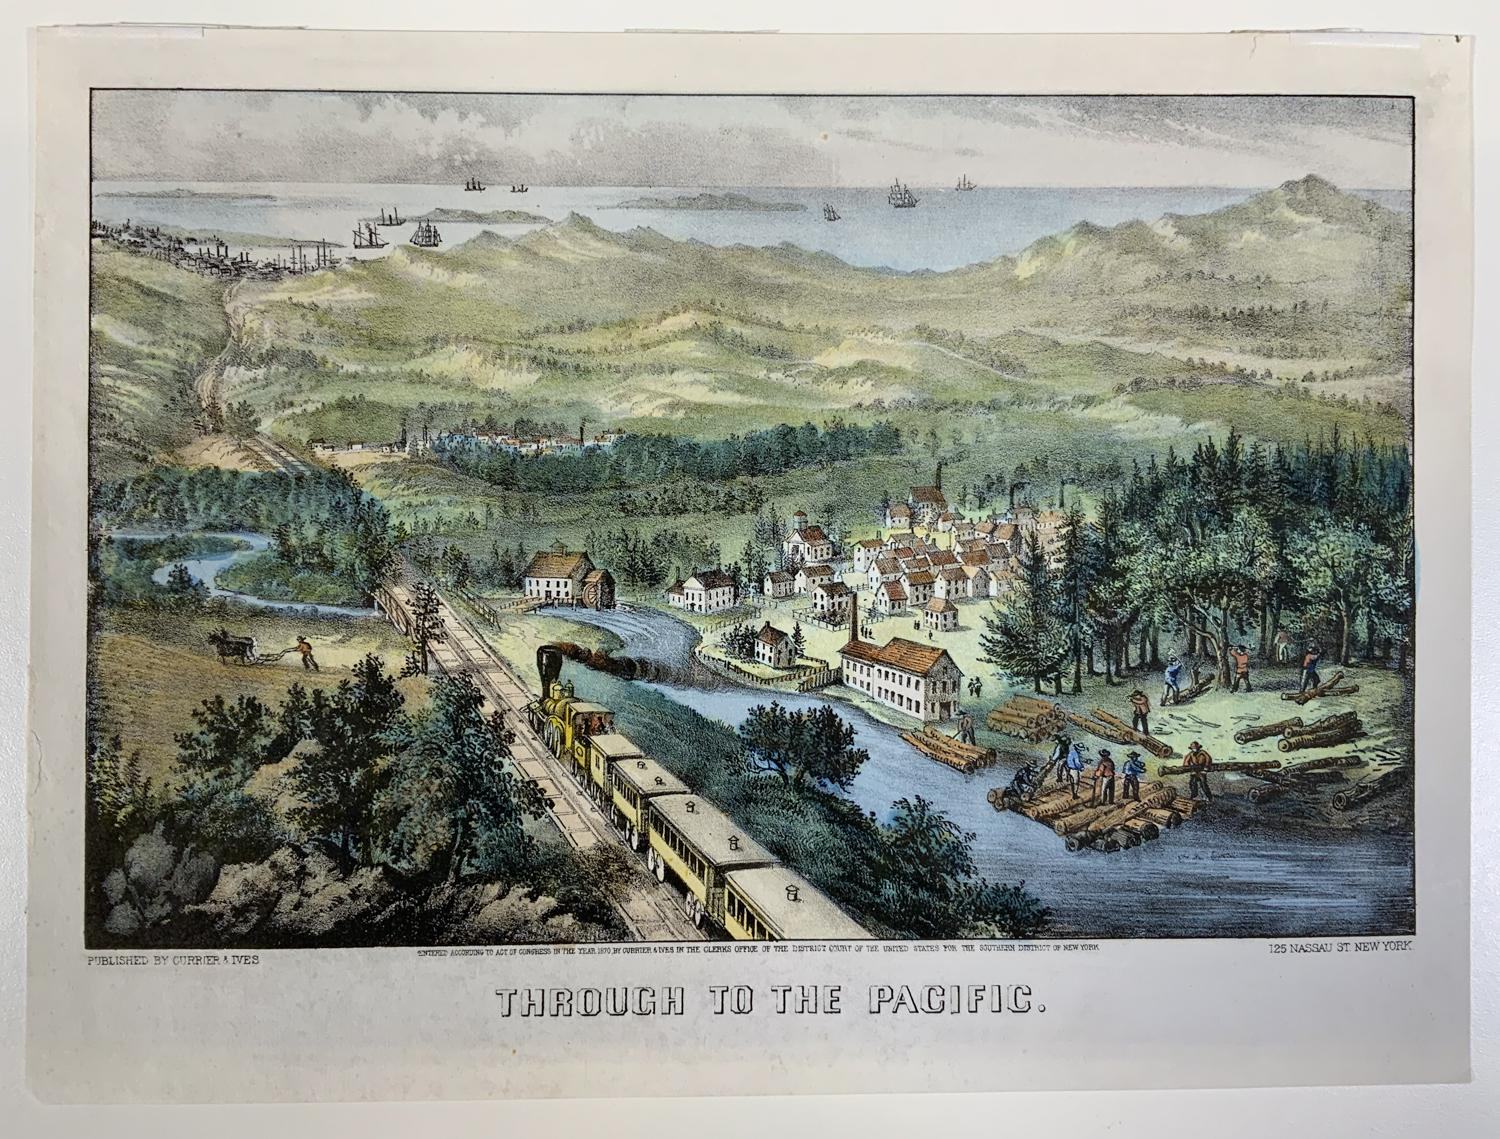 Currier and Ives (Publisher): Through to the Pacific, Hand Colored Lithograph, 1870